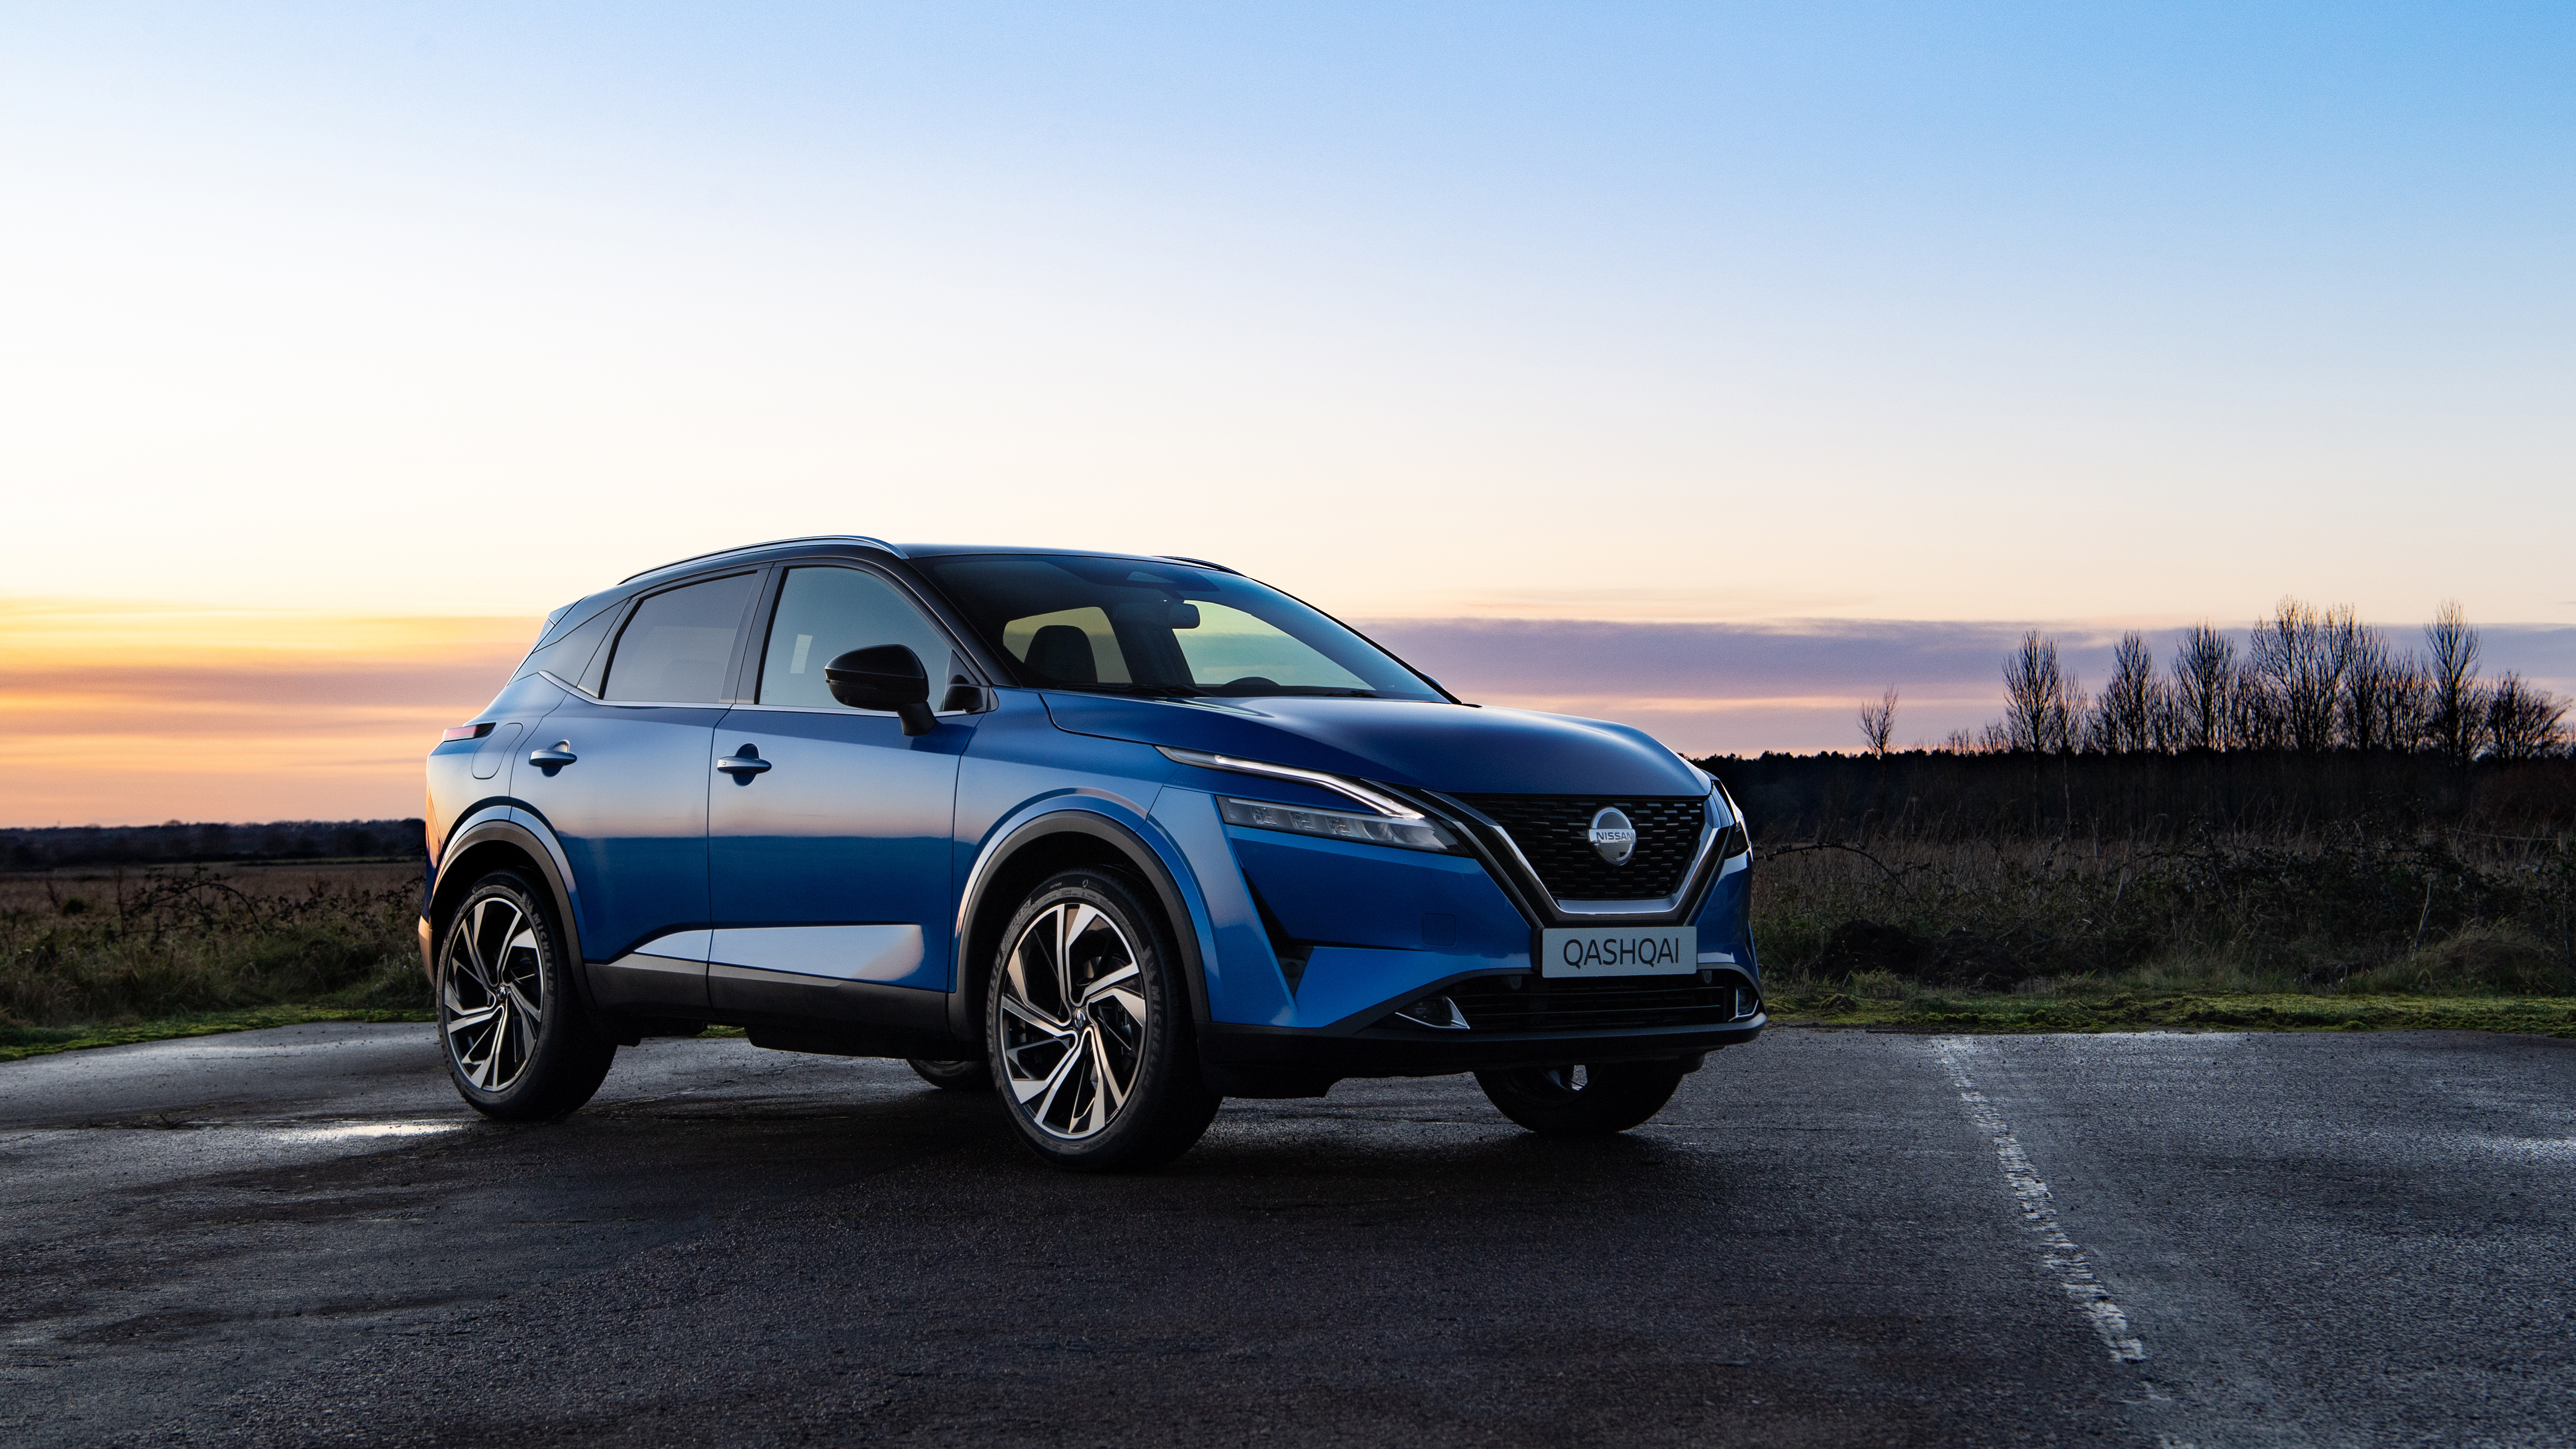 Wallpaper 2021 Nissan Qashqai SUV at sunset